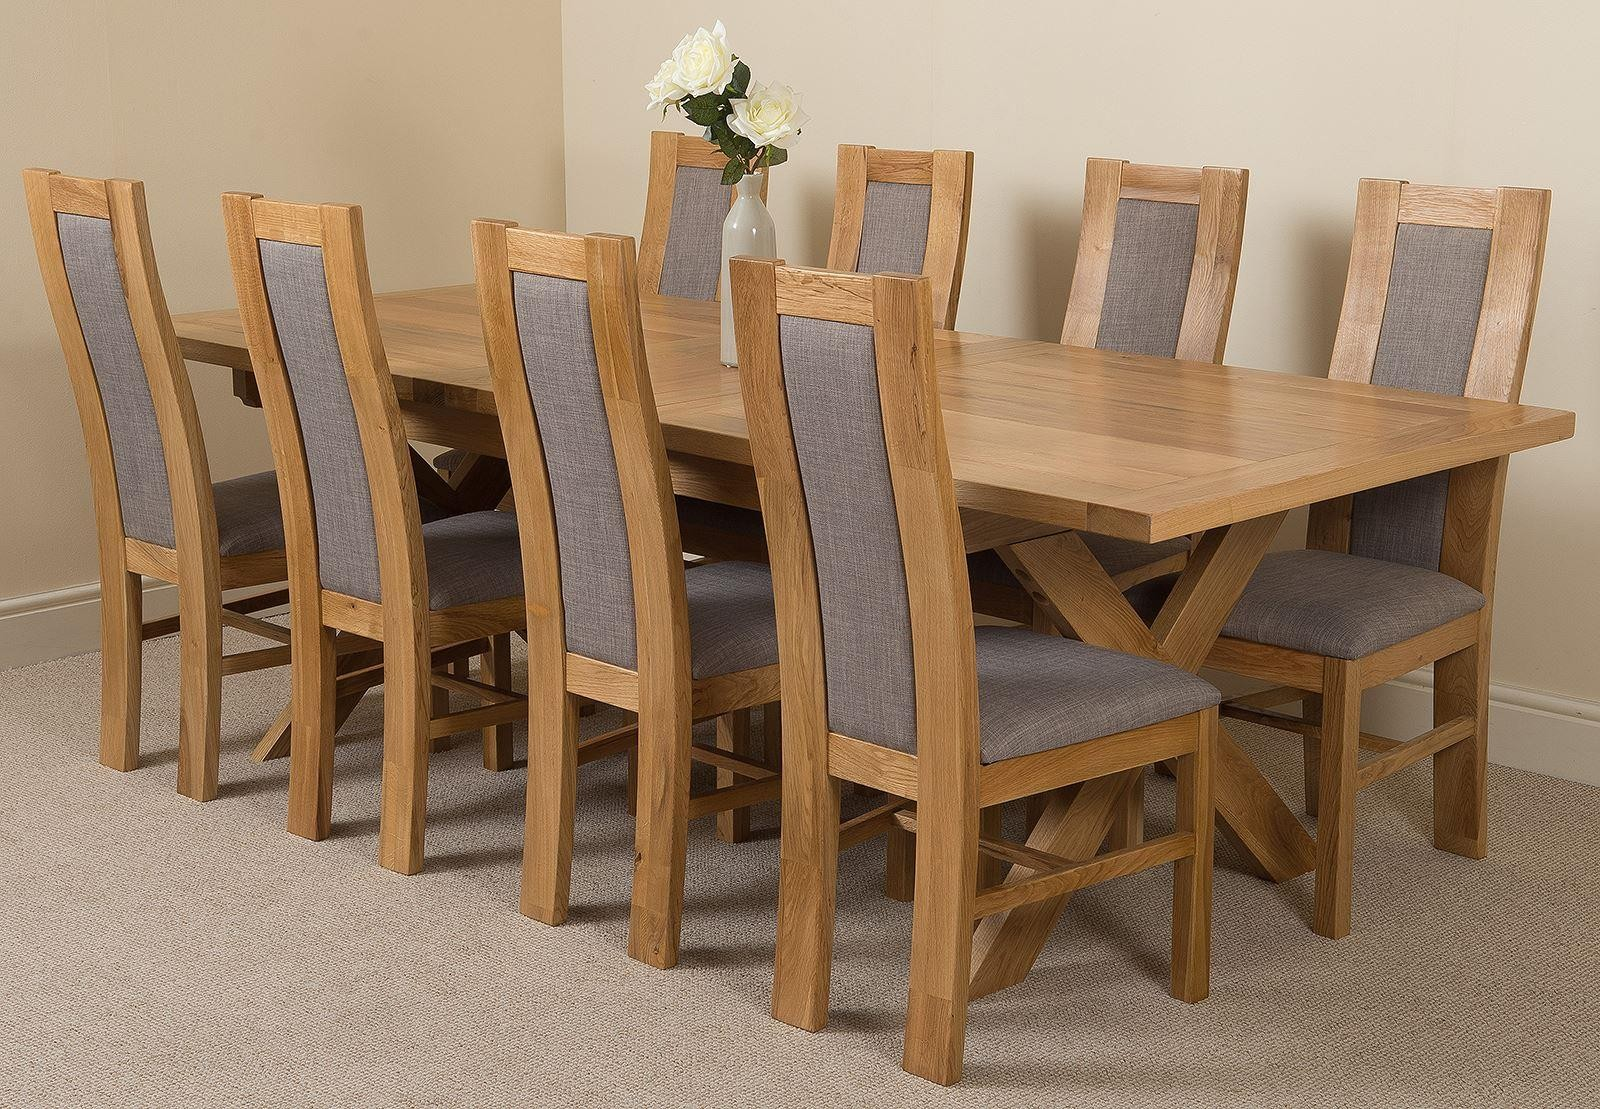 Vermont Solid Oak 200cm-240cm Crossed Leg Extending Dining Table with 8 Stanford Solid Oak Dining Chairs [Light Oak and Grey Fabric]